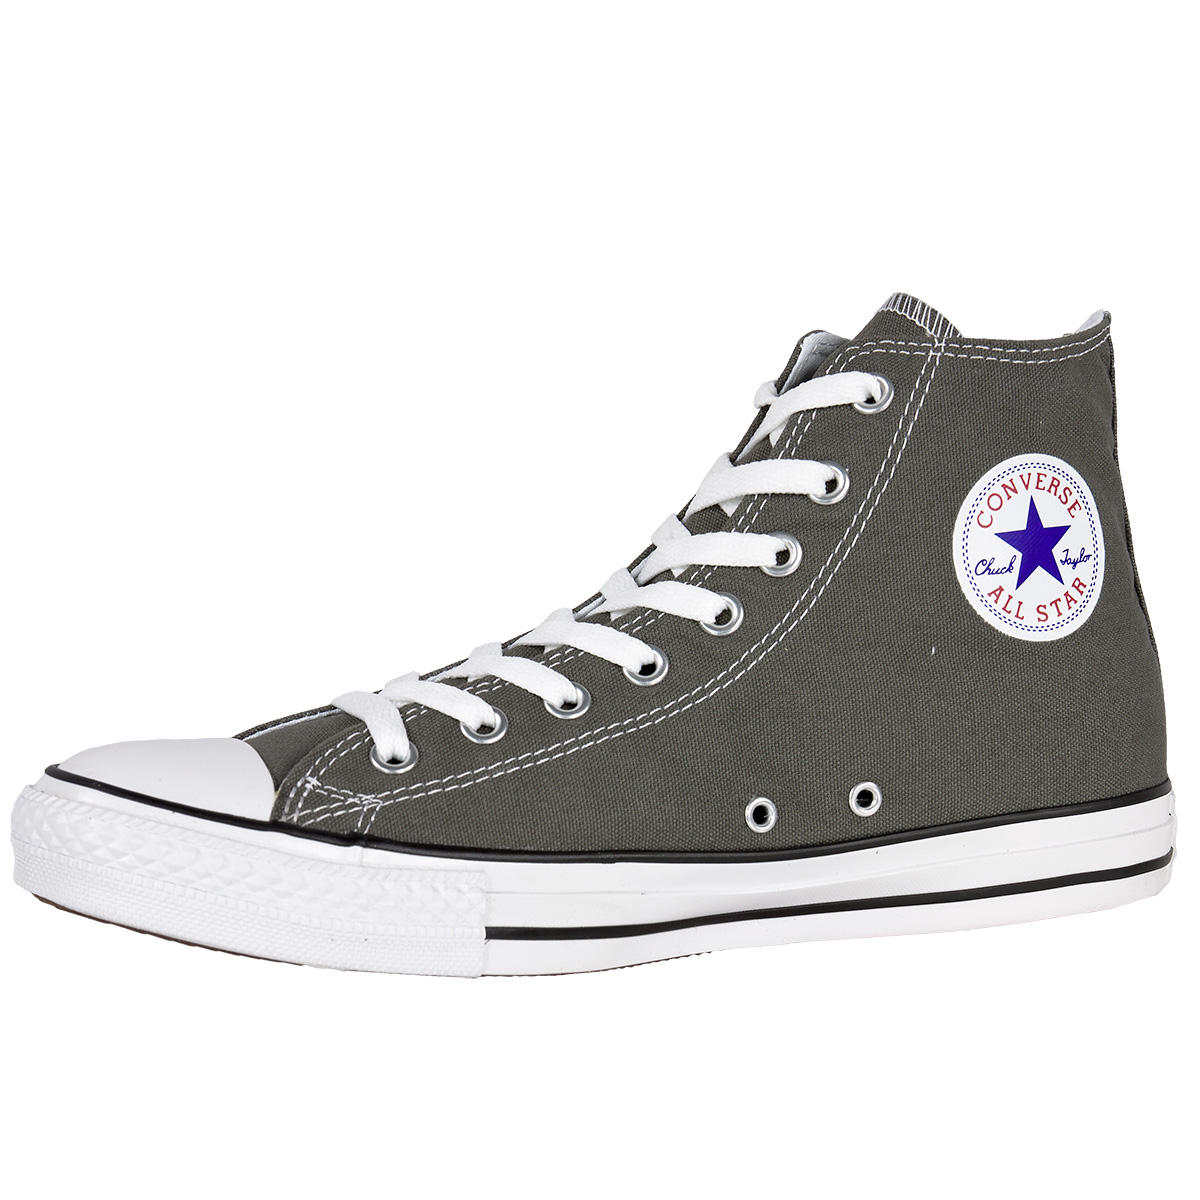 Converse-Chuck-Taylor-All-Star-Hi-Shoes-Sneakers-Chucks-Classic-Basic